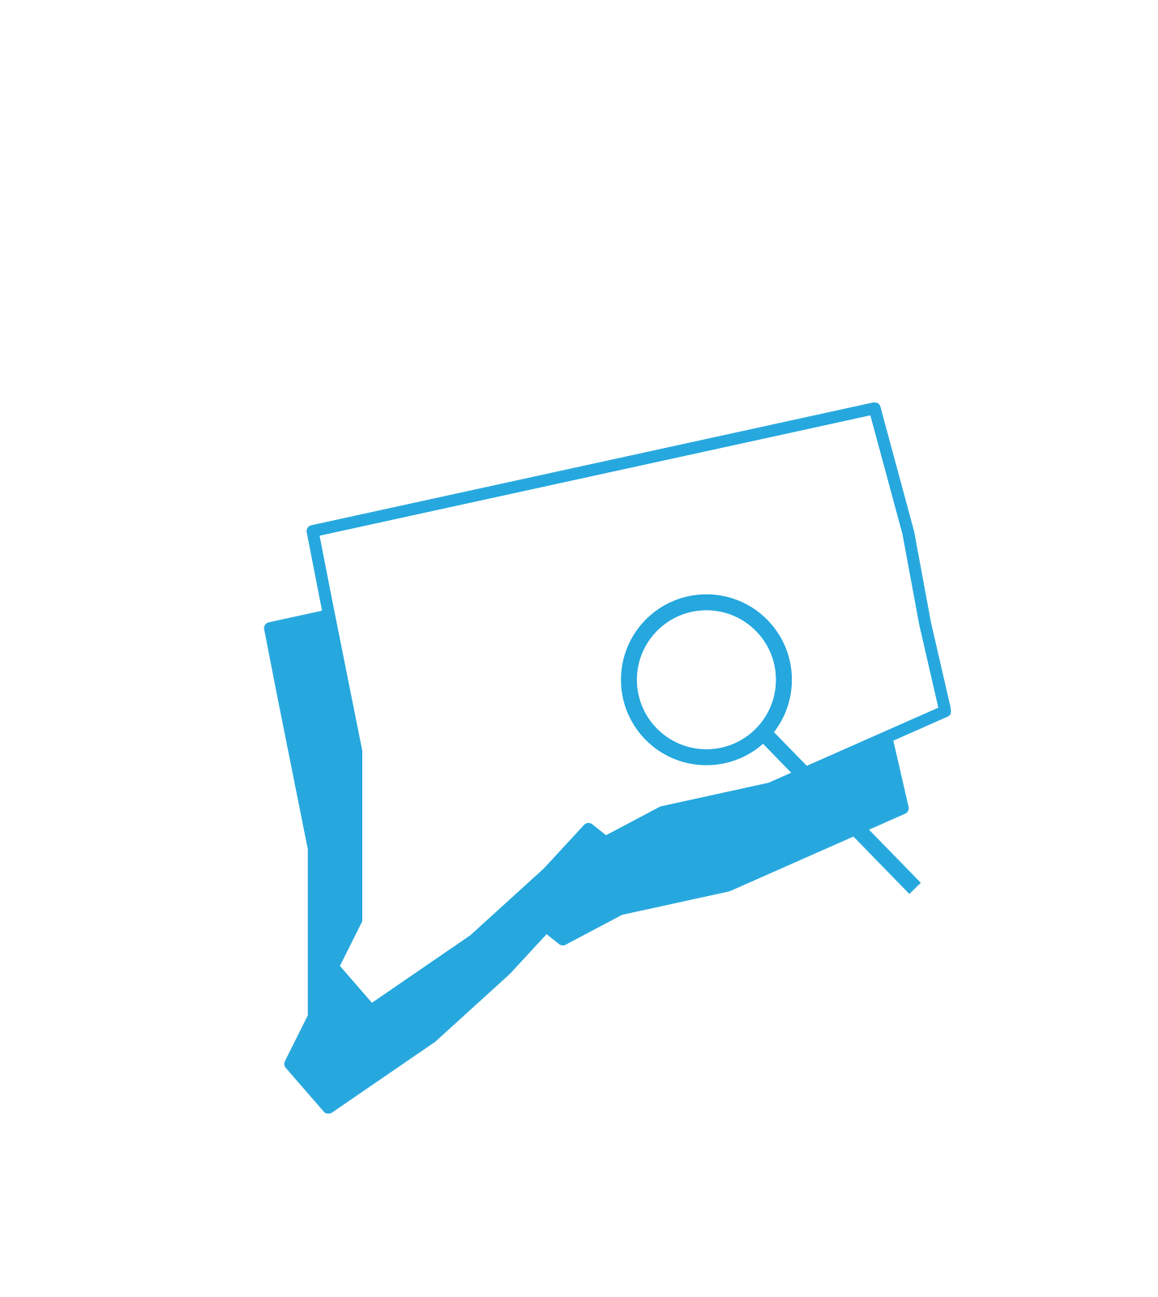 Outline of the State of Connecticut with a magnifying glass